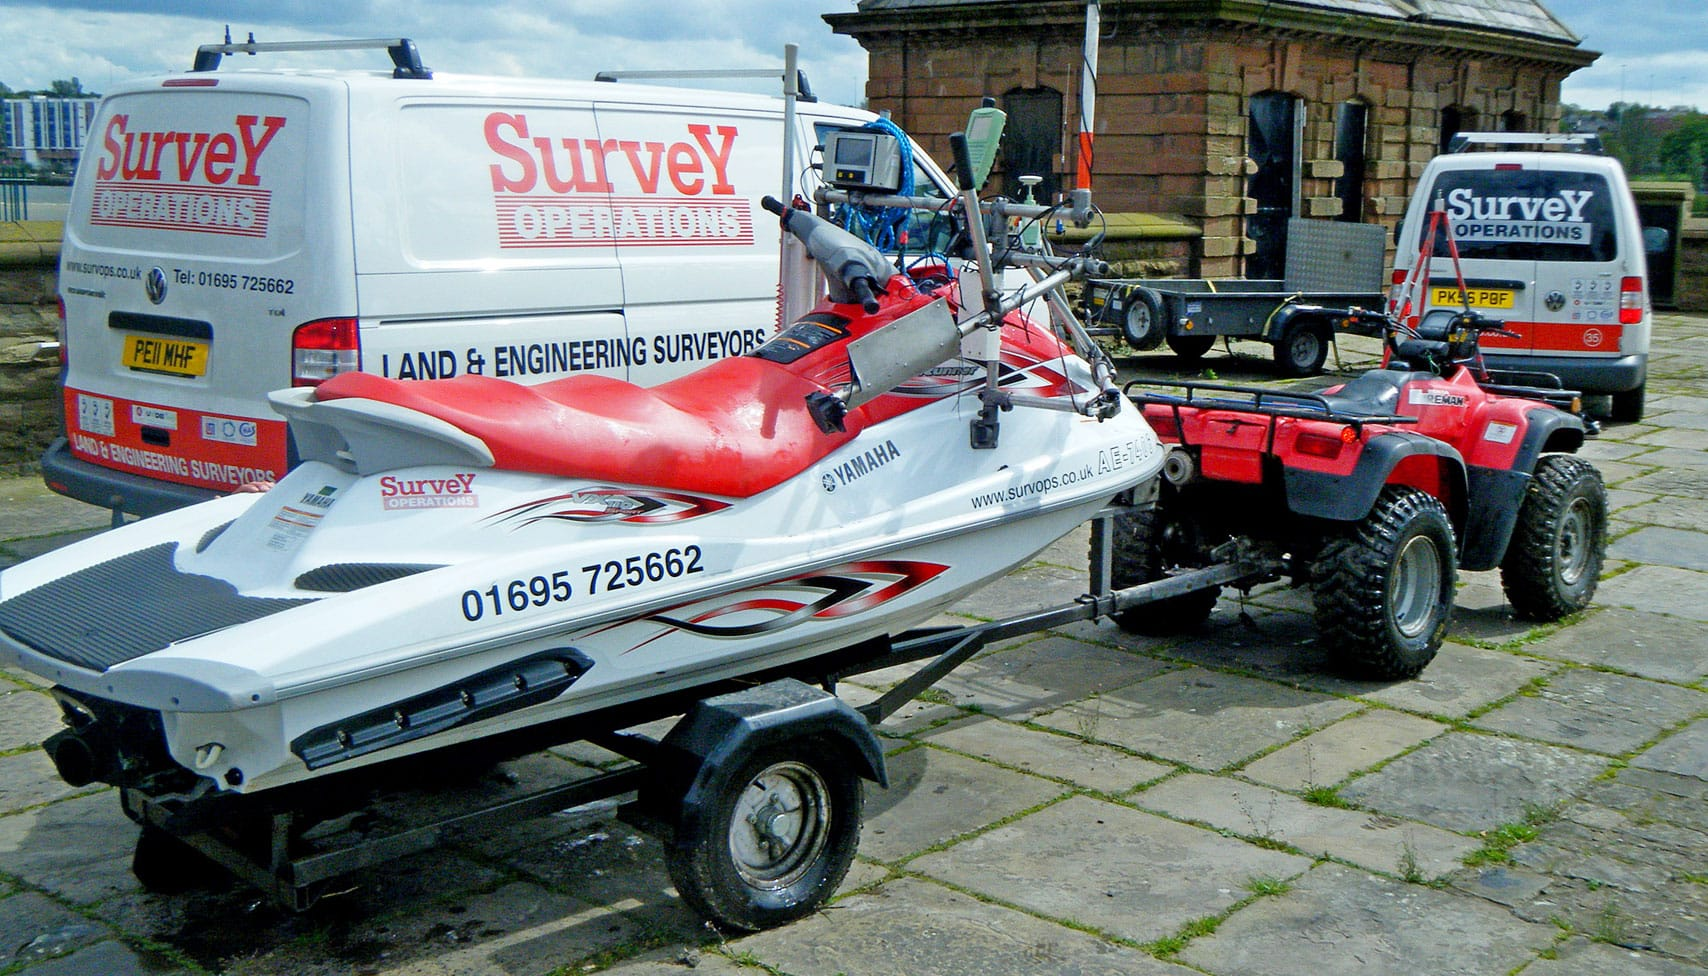 Survey Operations Jet Ski